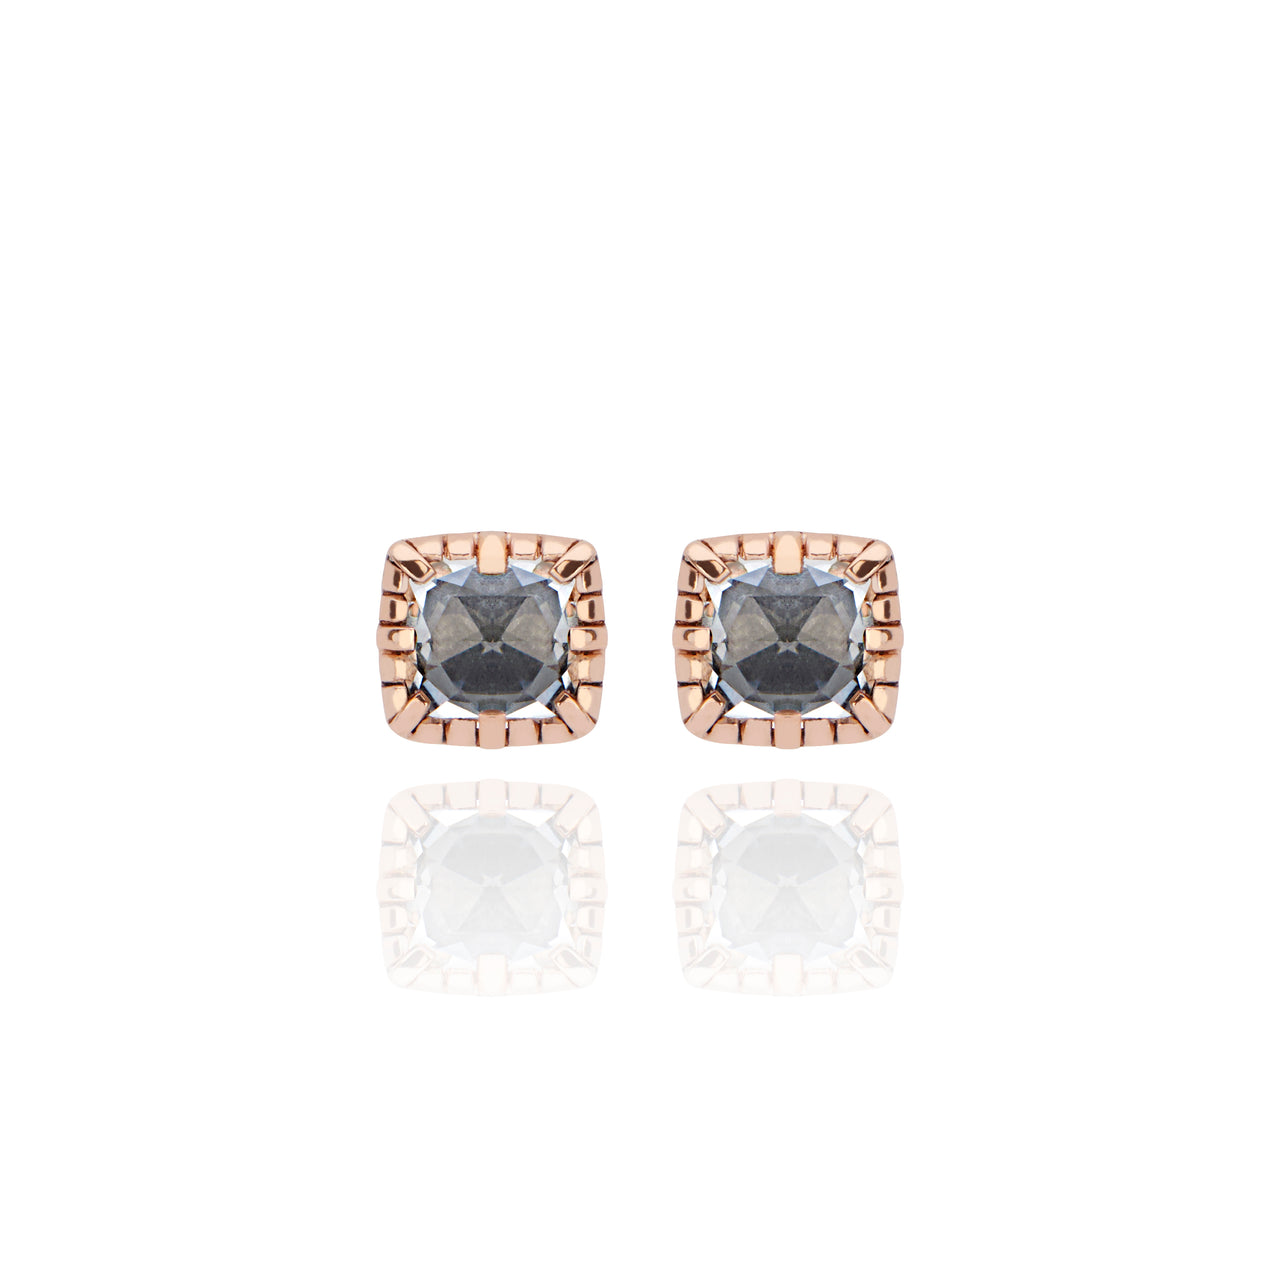 Bella Stud Earrings